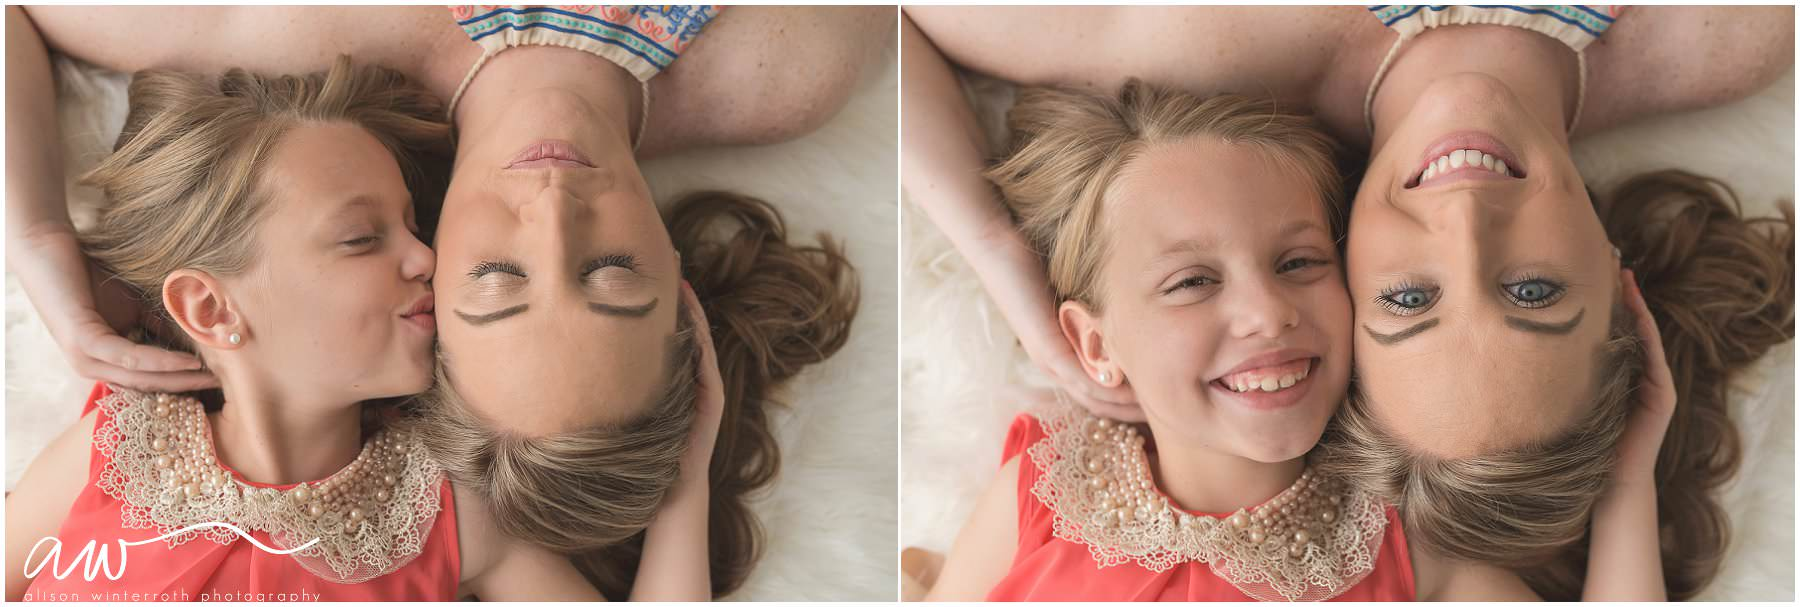 A mom and her daughter laying on a rug holding each other